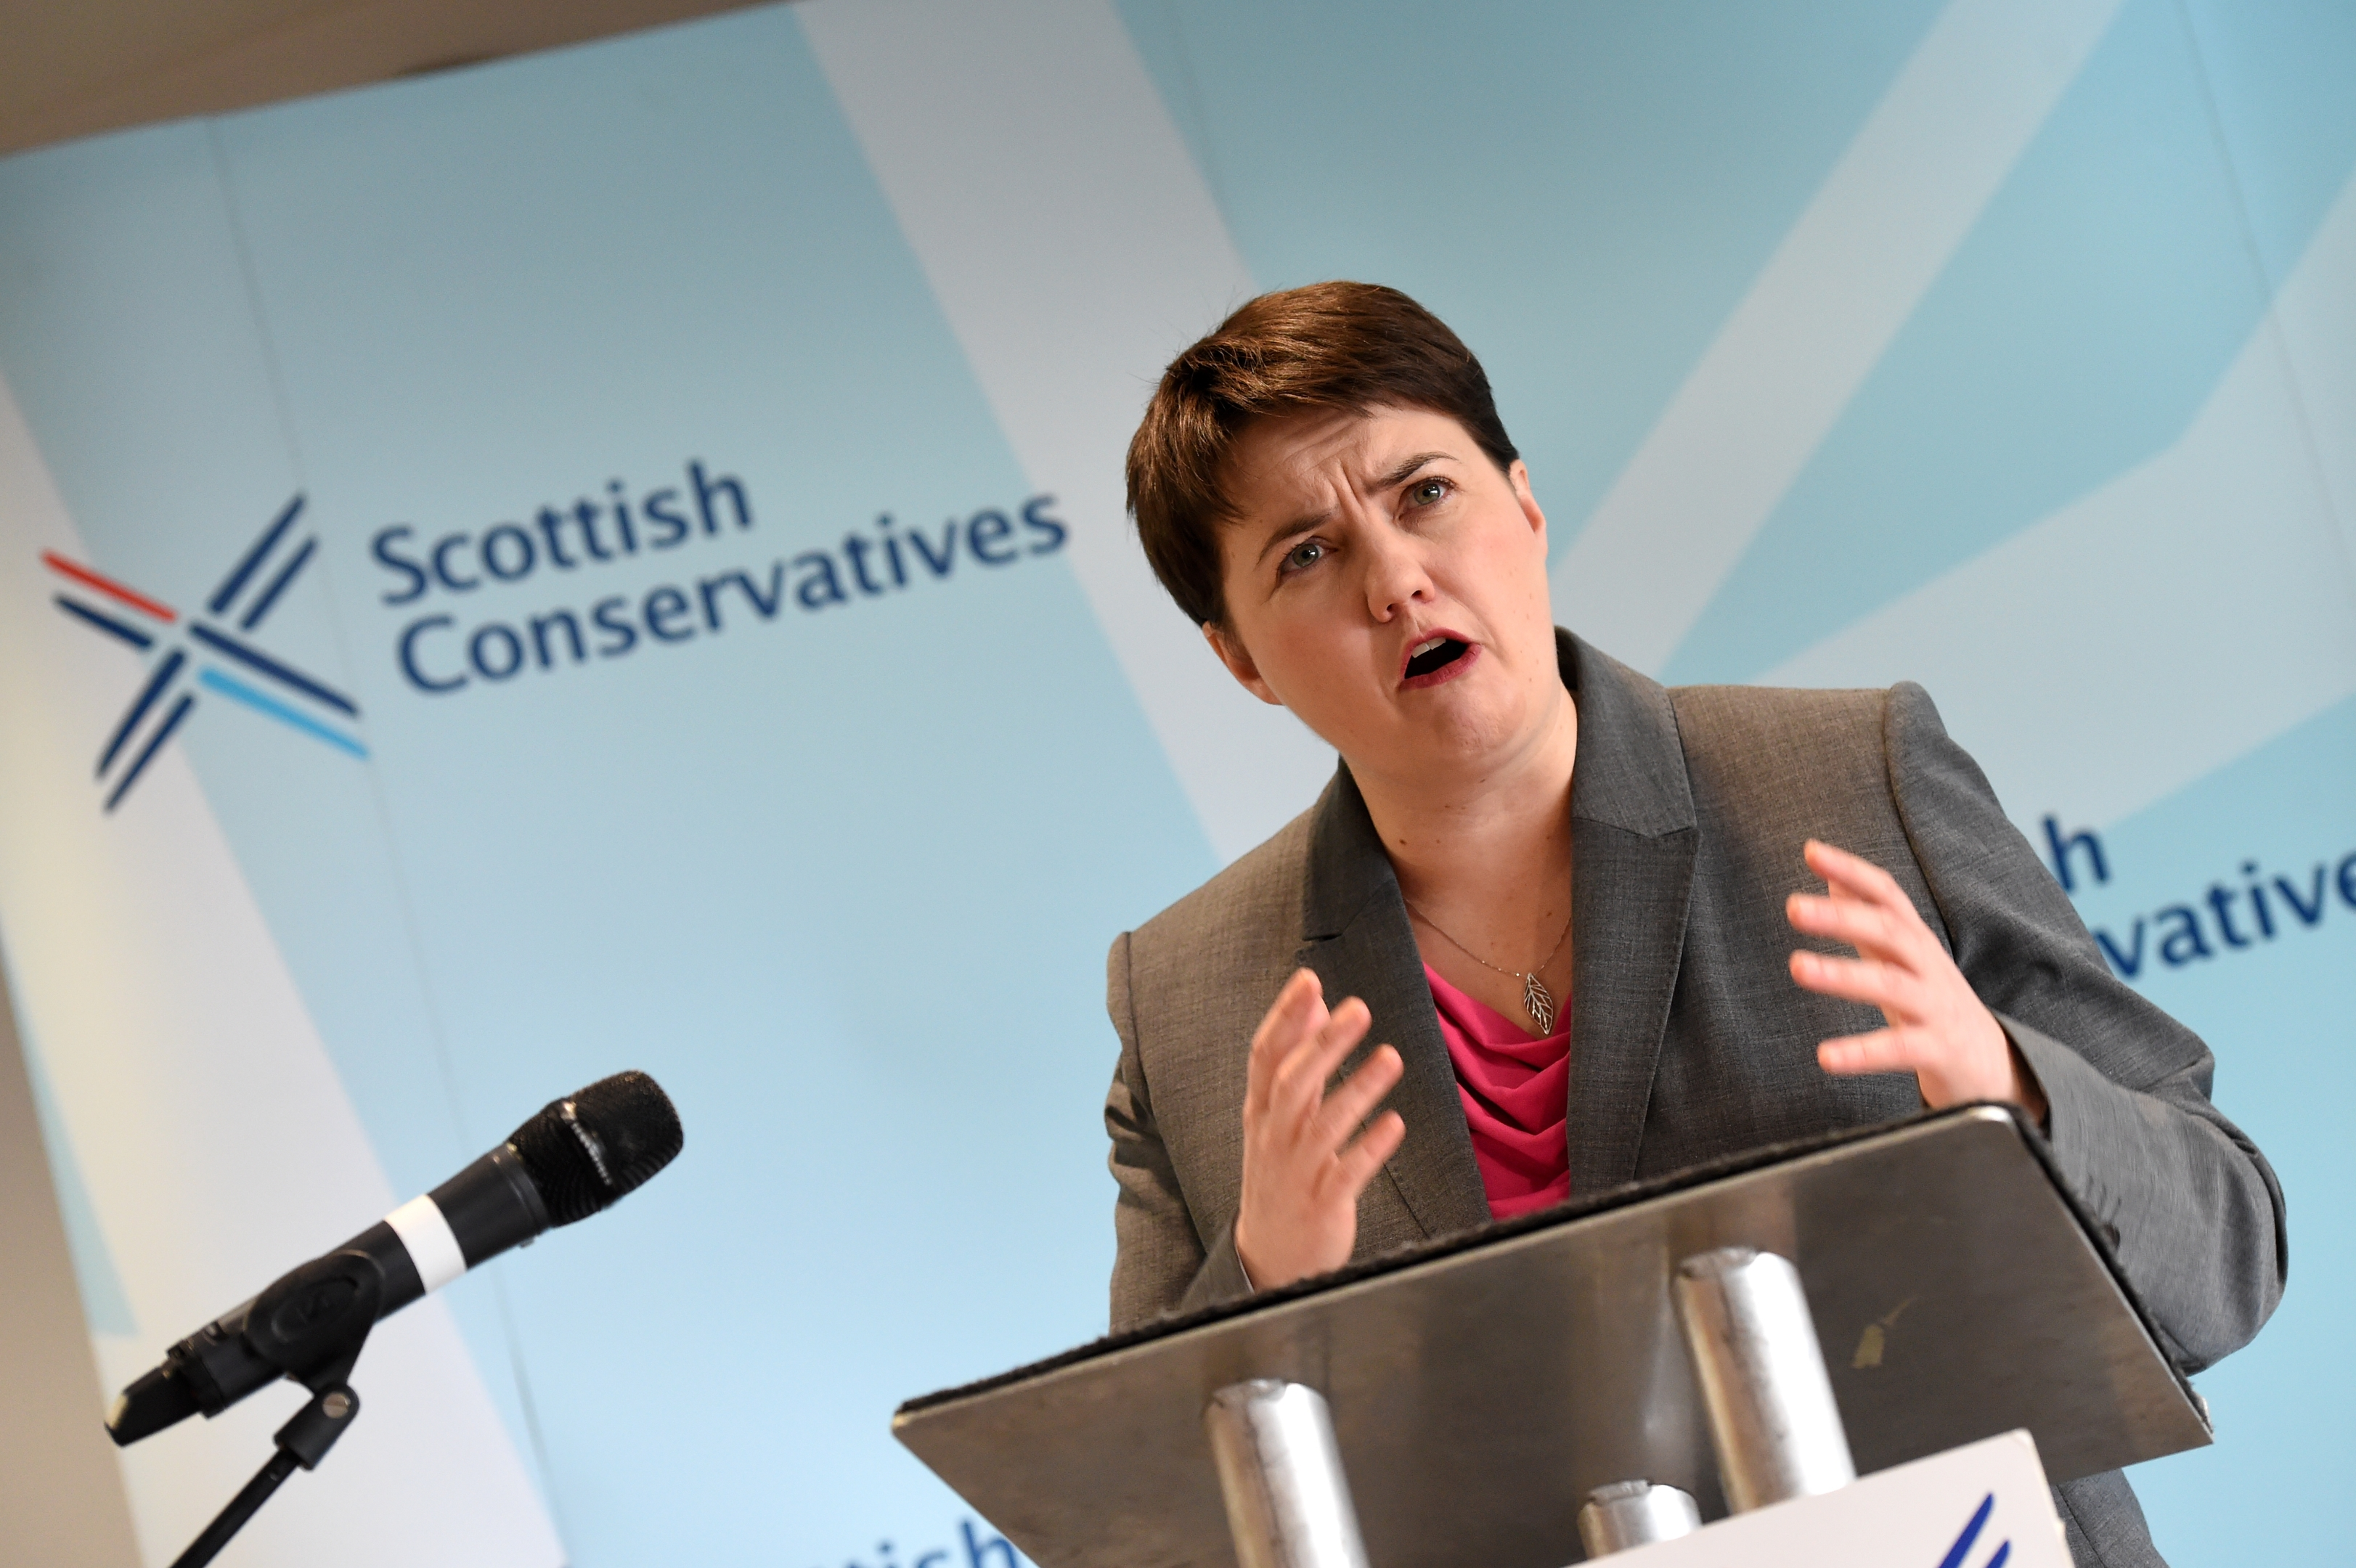 Ruth Davidson MSP, Leader of the Scottish Conservative and Unionist Party, speaking at a conference held at Hilton Treetops Hotel, Aberdeen.  Picture by KEVIN EMSLIE